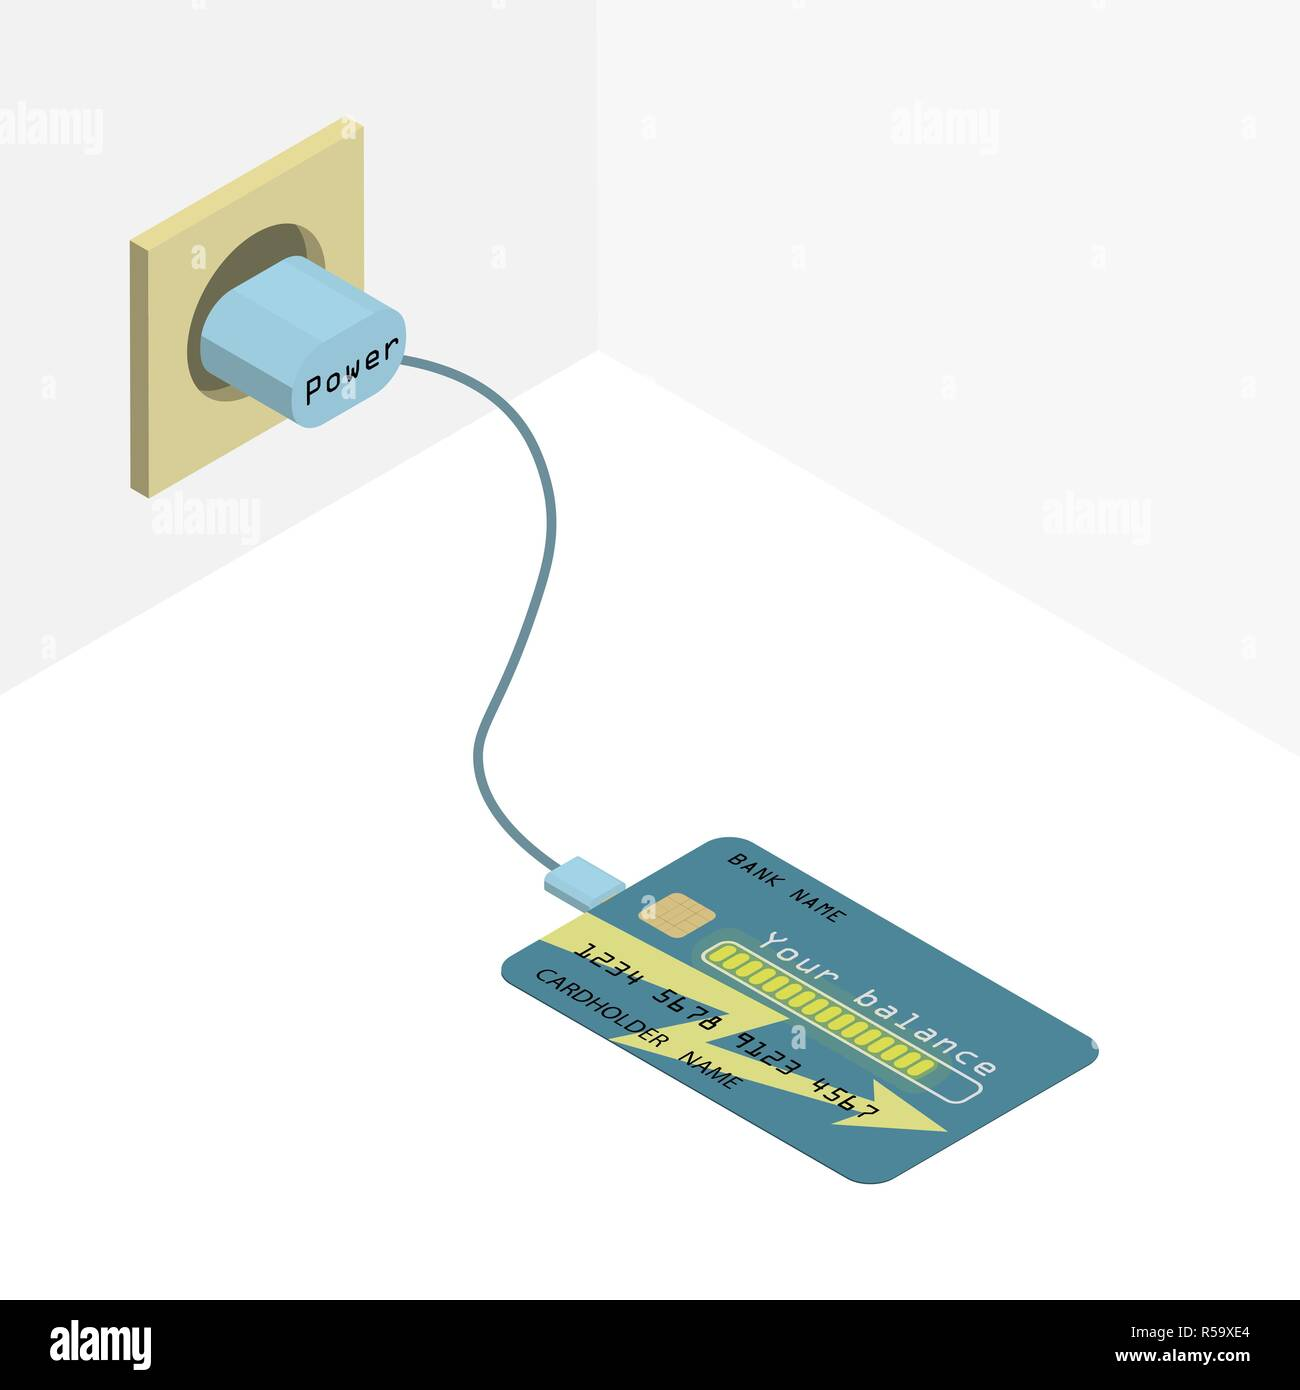 Credit card on charge. The credit card abstractly charges its balance. - Stock Vector